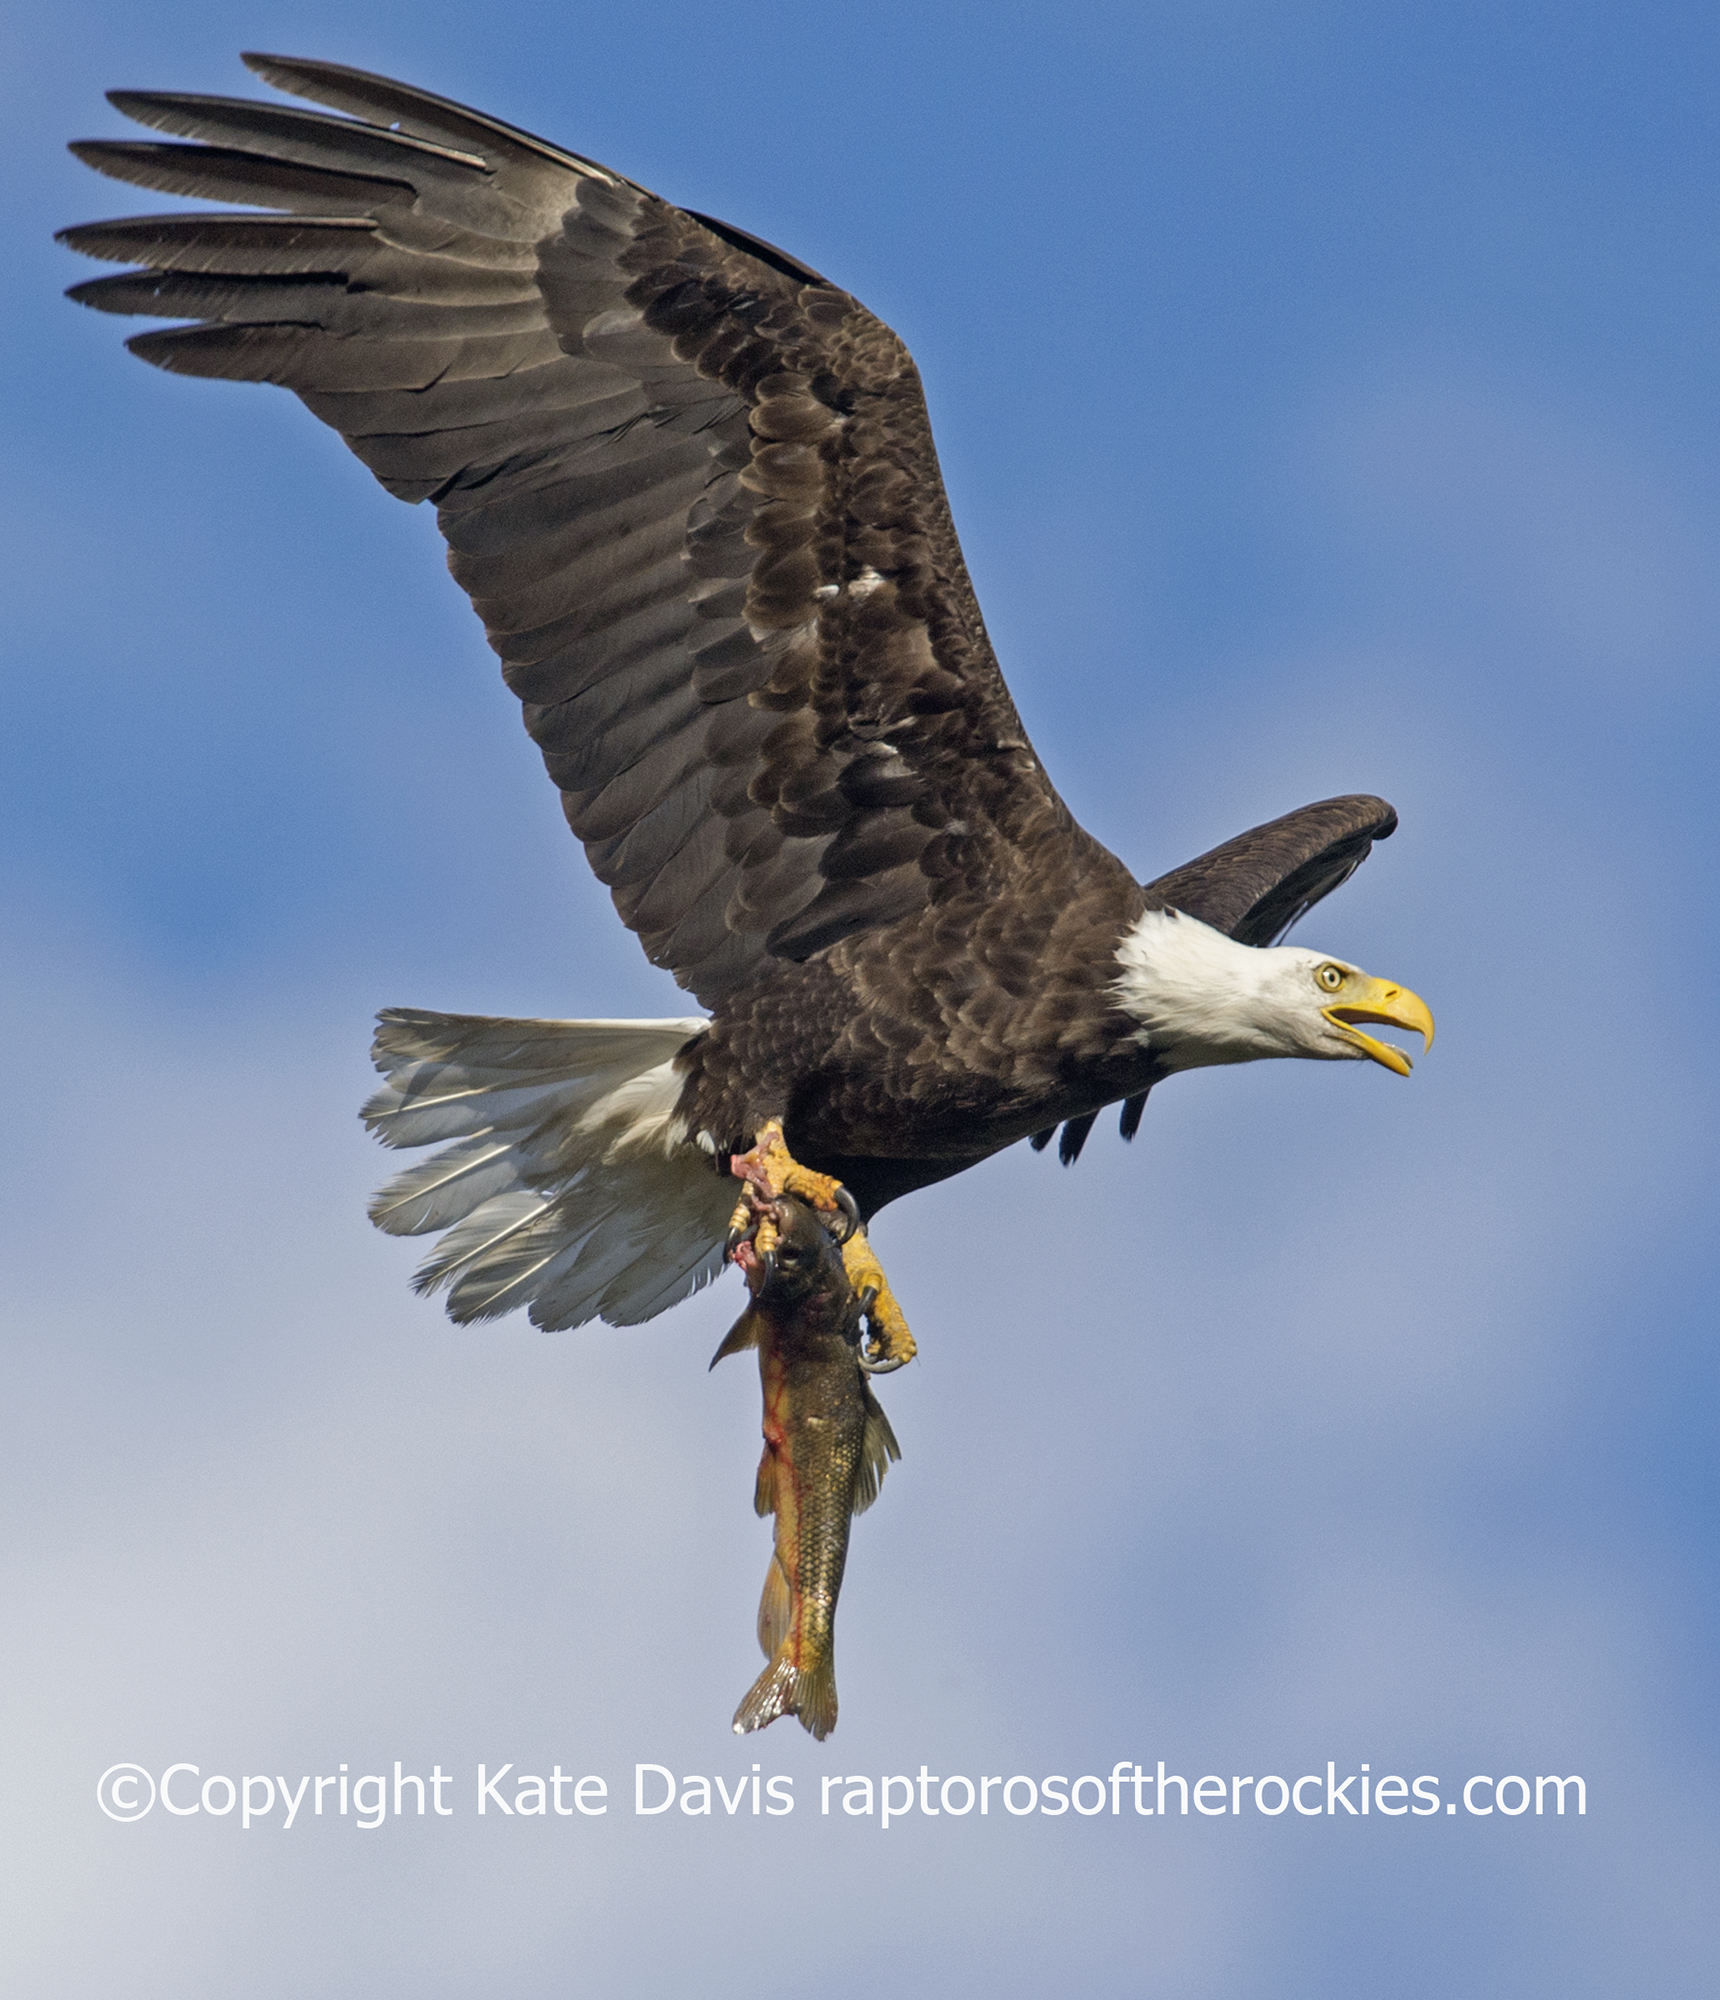 This Bald Eagle was flying over the Bitterroot River in Montana with a sucker, just as two young had fledged from the nest